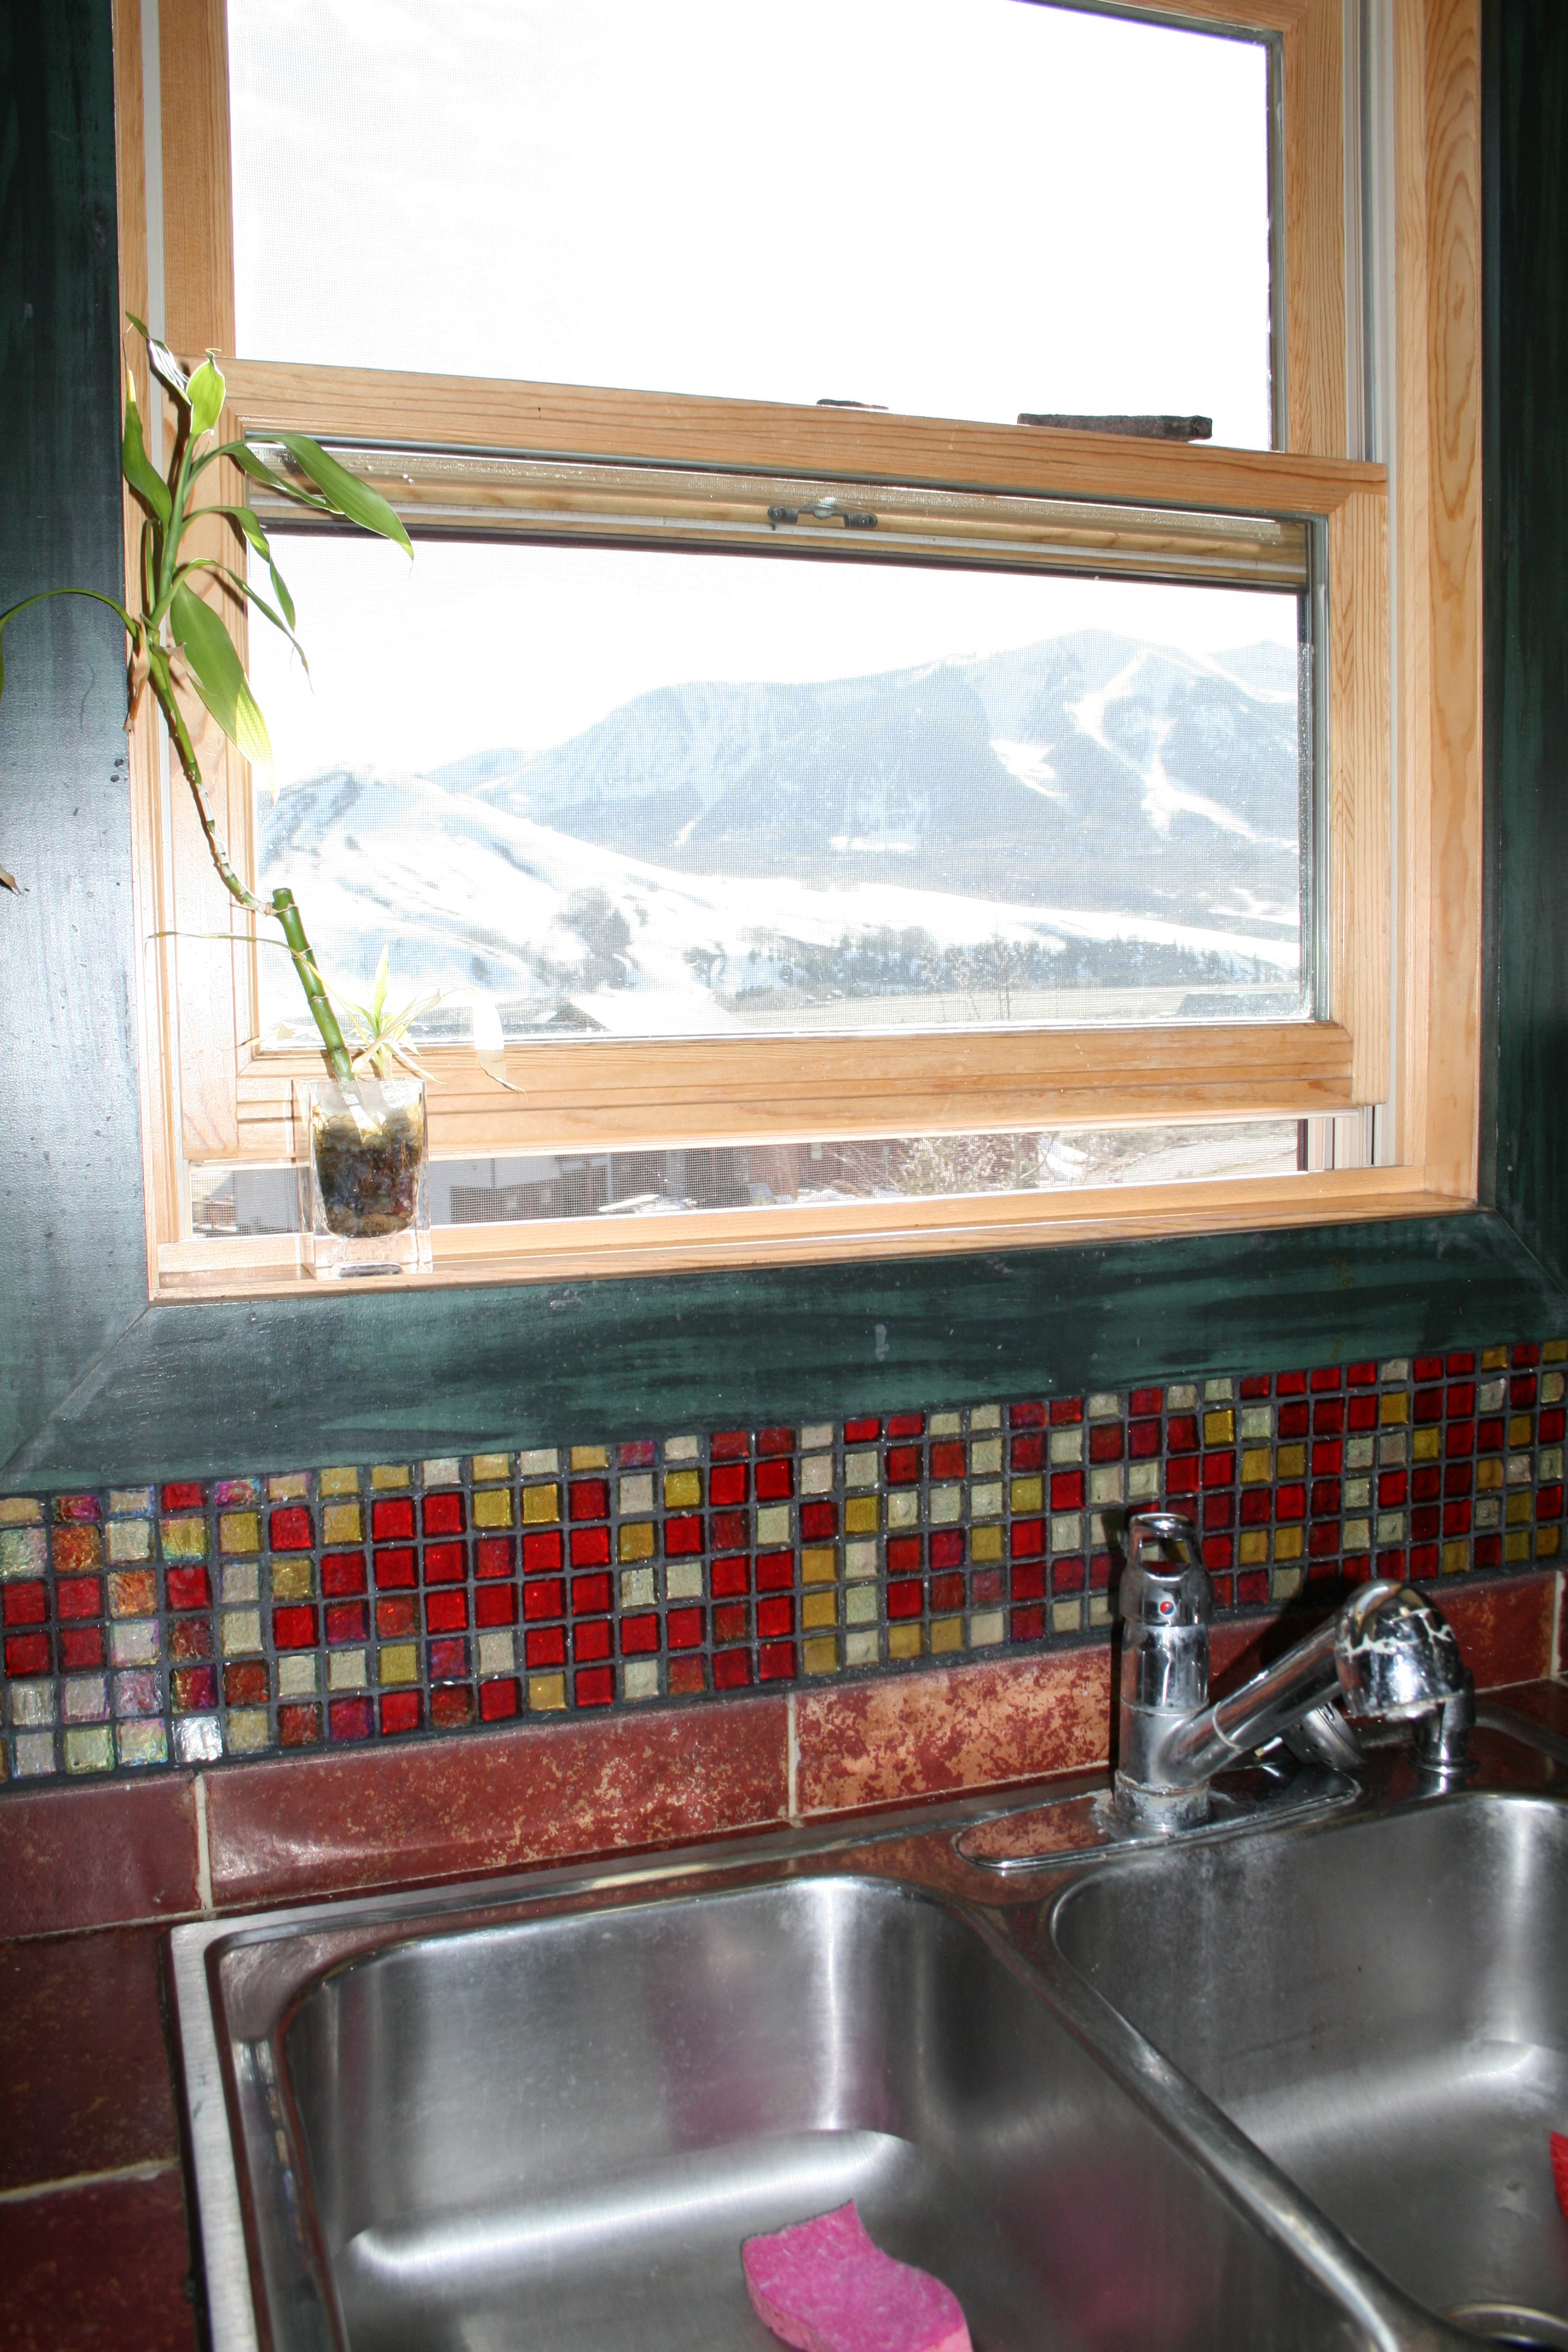 355-Zeligman-Street-Crested-Butte-South